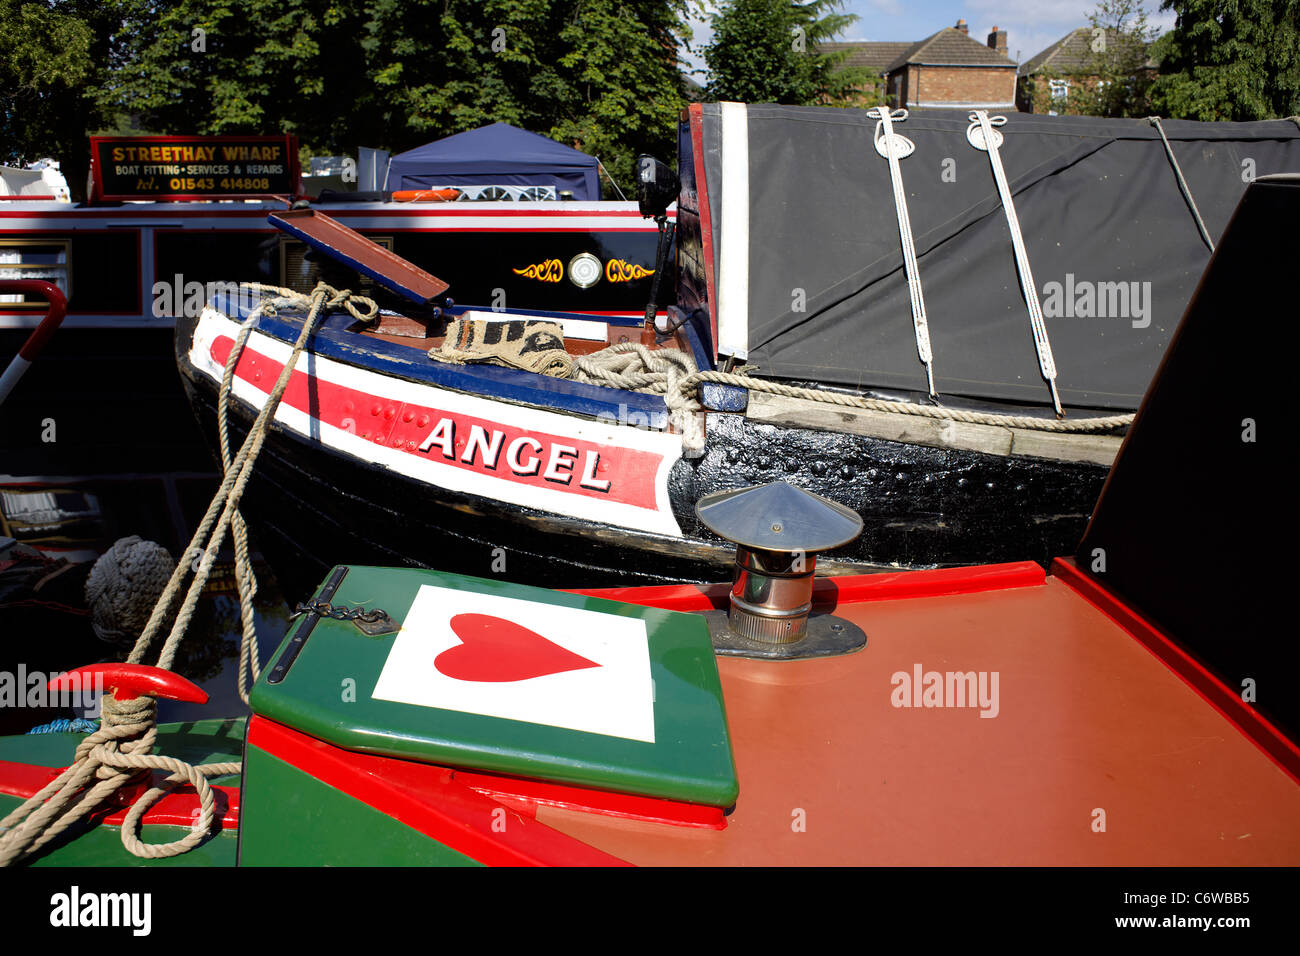 Traditional working butty, Angle, moored on the Trent and Mersey Canal during the 2011 Inland Waterways Festival - Stock Image